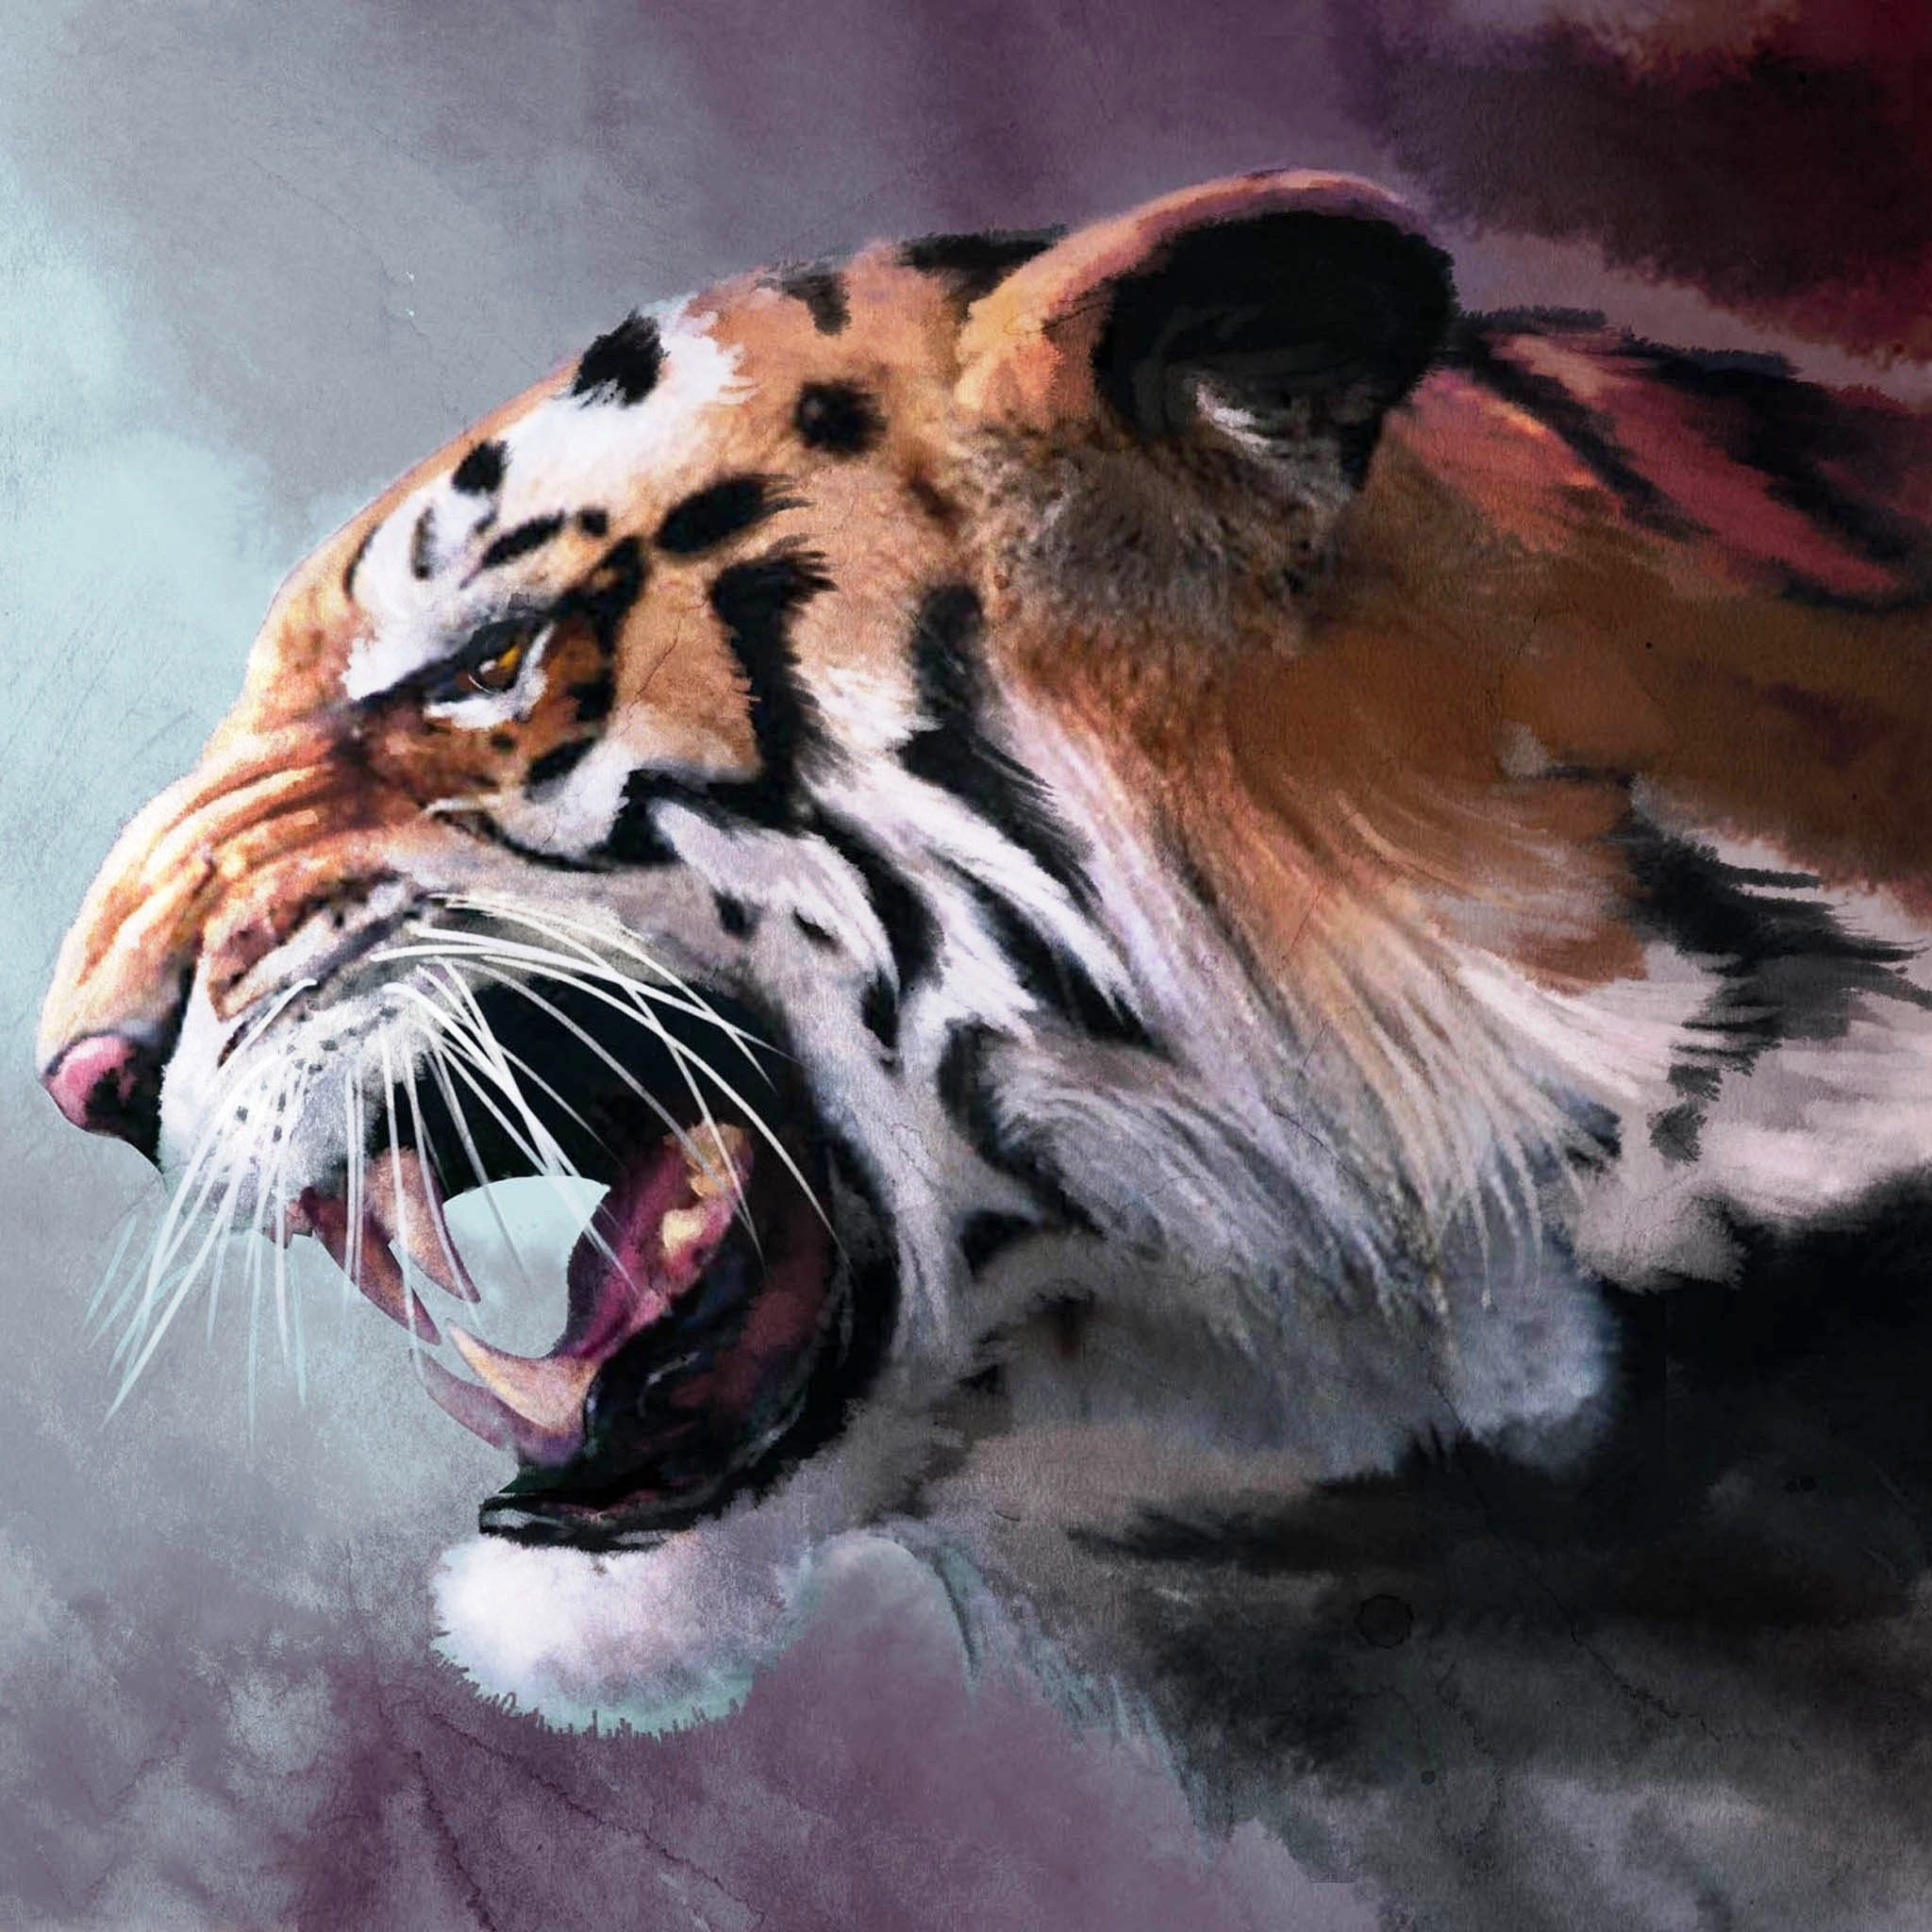 Angry Tiger Painting 2048x2048 Jpg 2048 2048 Tiger Wallpaper Tiger Art Pet Tiger